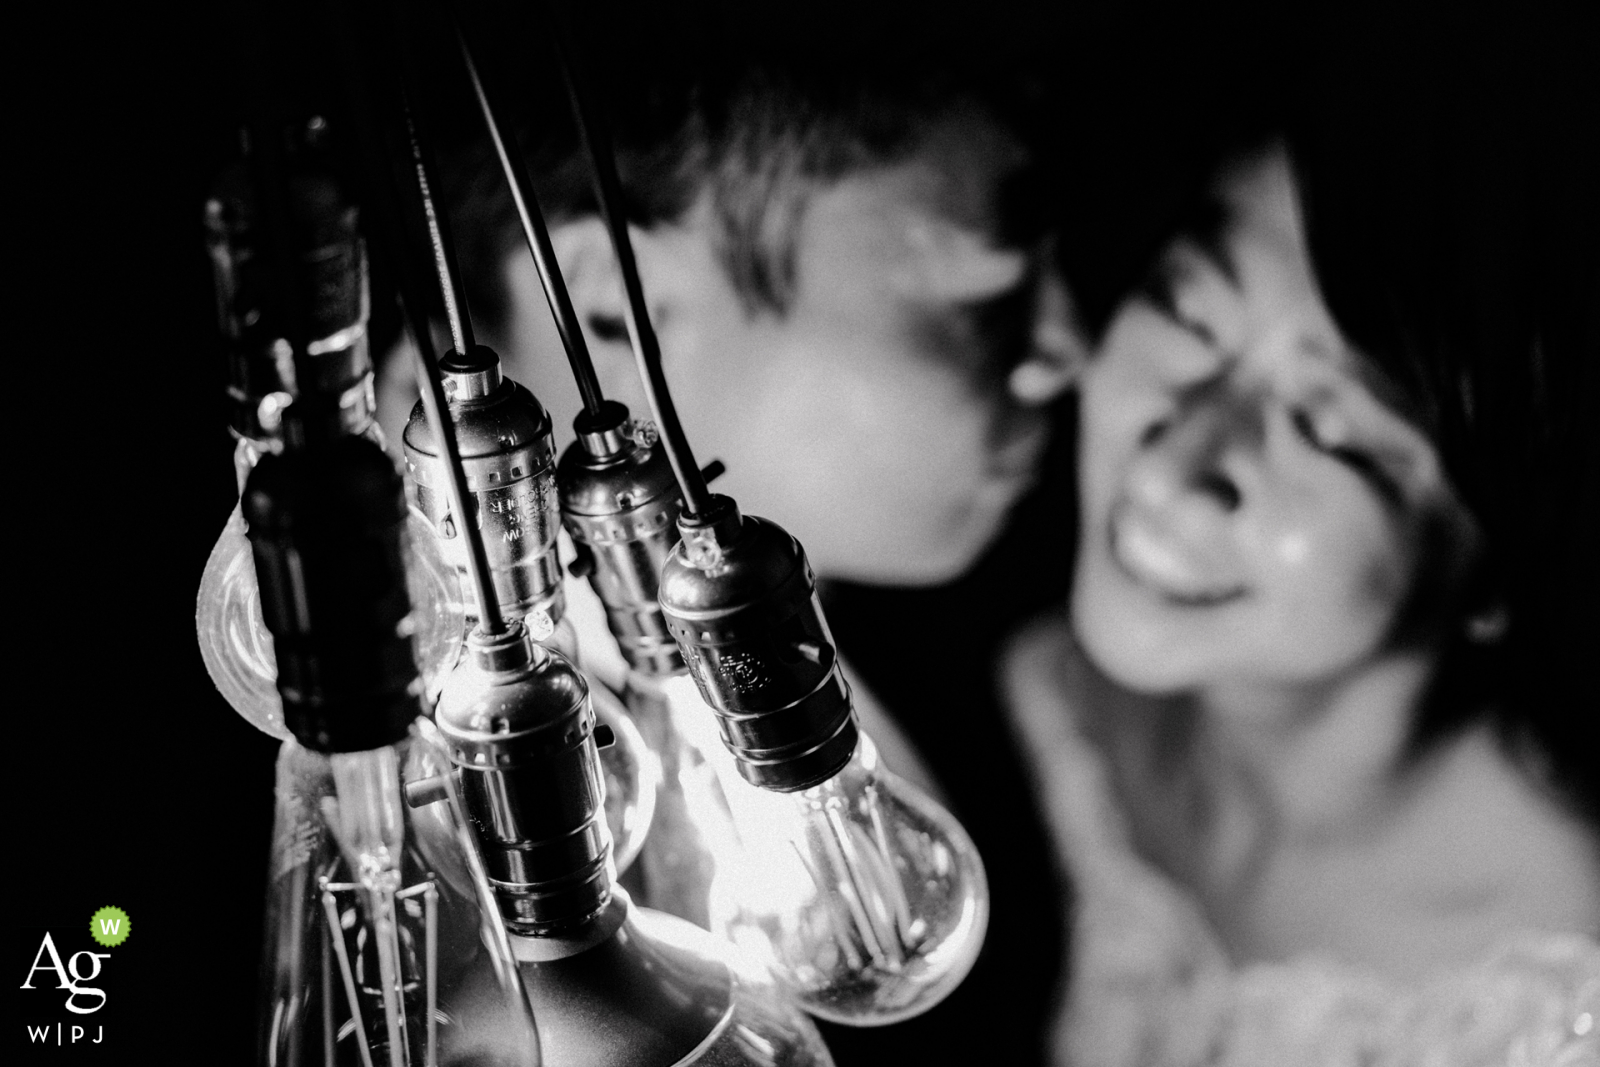 Taipei Taiwan bride and groom portrait with industrial bare bulb lighting